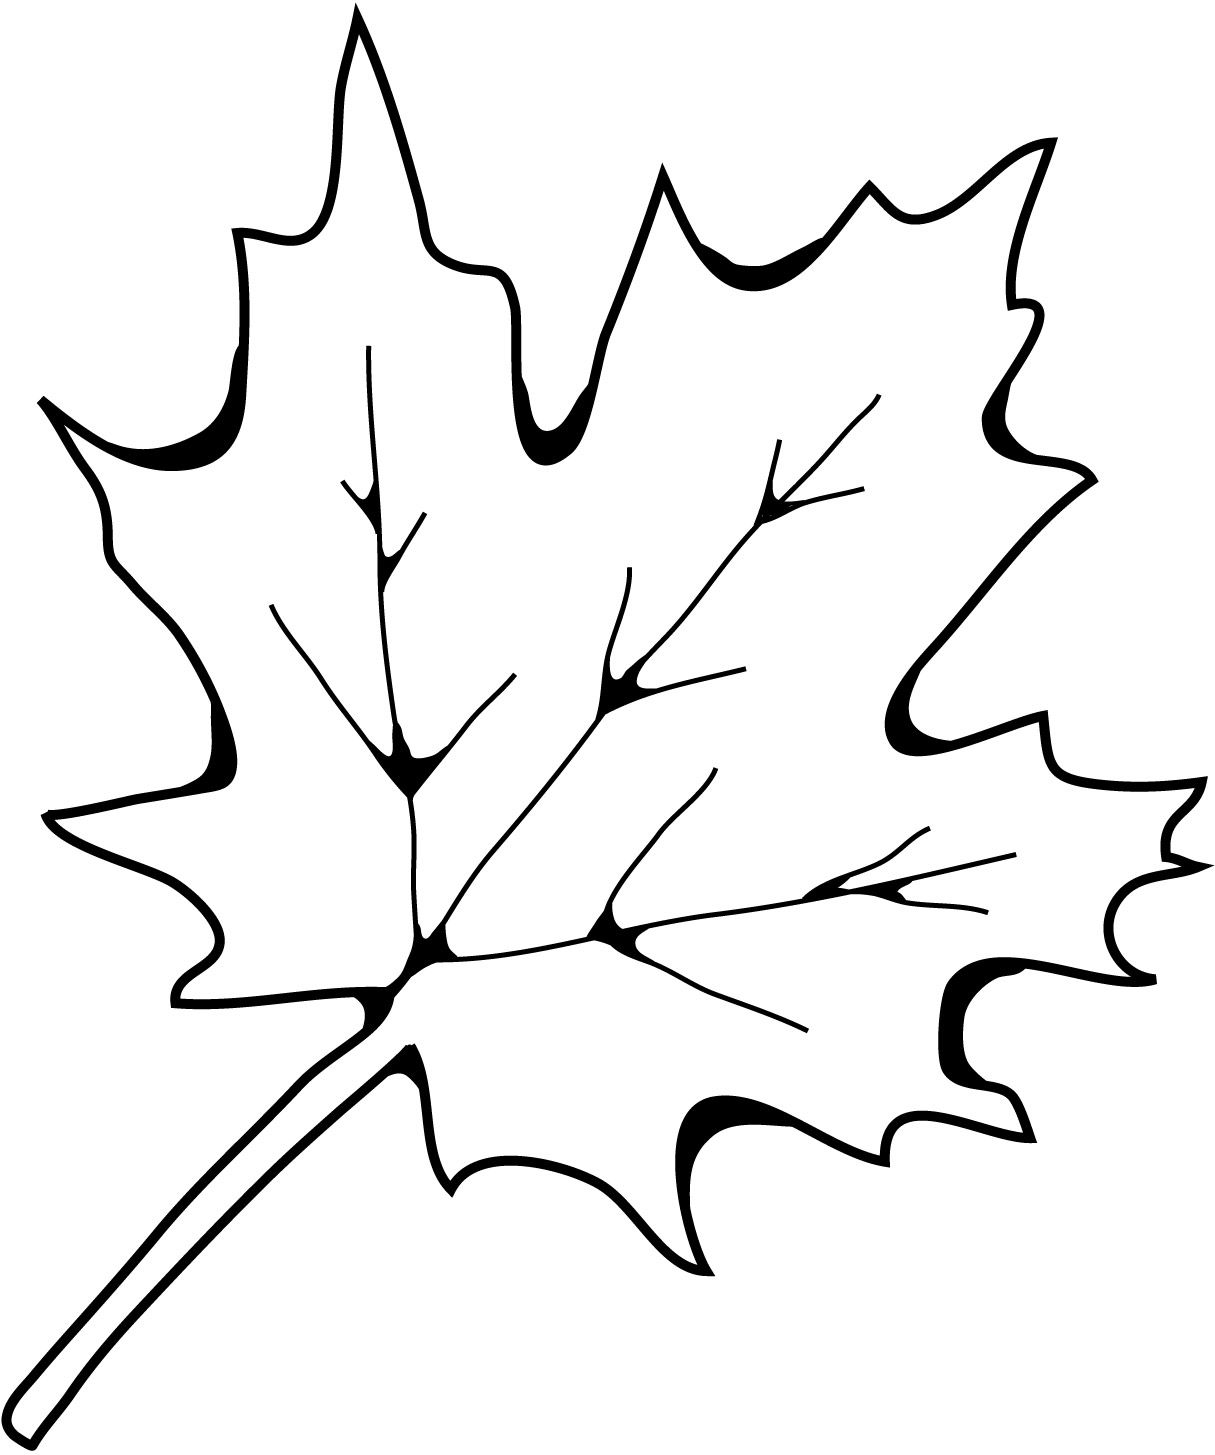 Use this leaf coloring page in a lesson today about fall